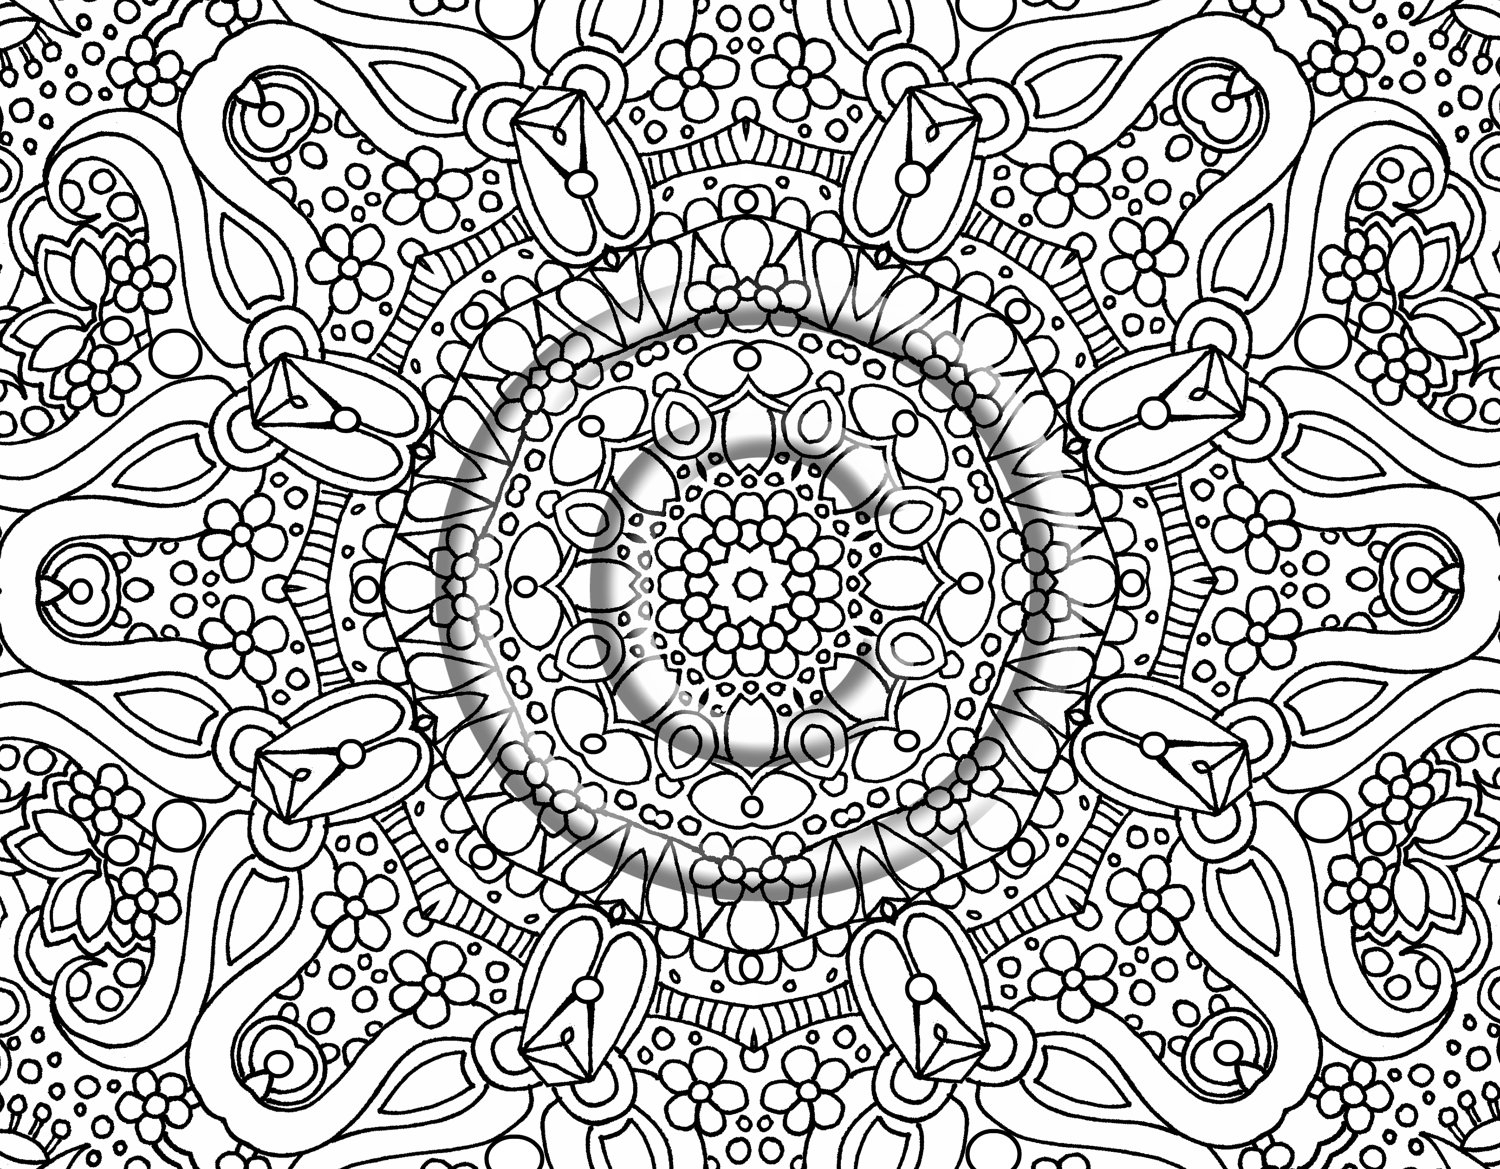 tessellations coloring pages geometric tessellations coloring pages coloring home coloring tessellations pages